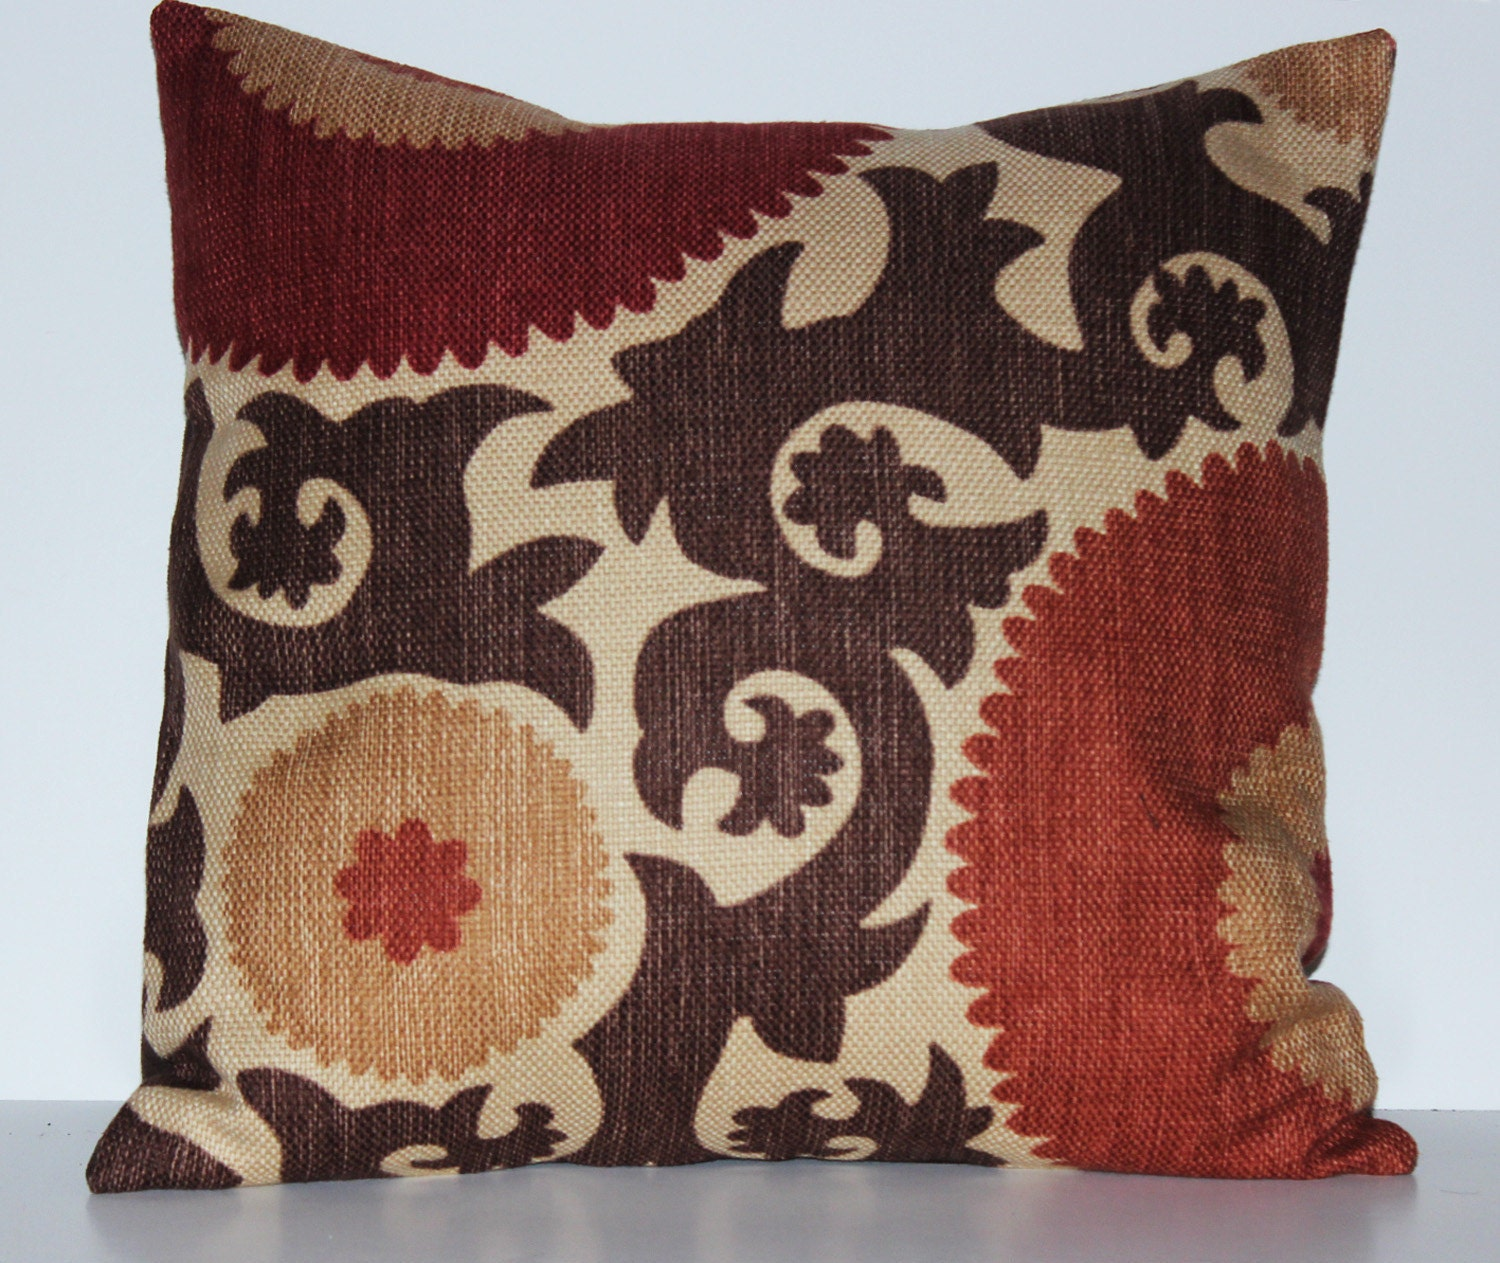 Rustic Suzanni Decorative Pillow 17 x 17 by VieDeJolie on Etsy